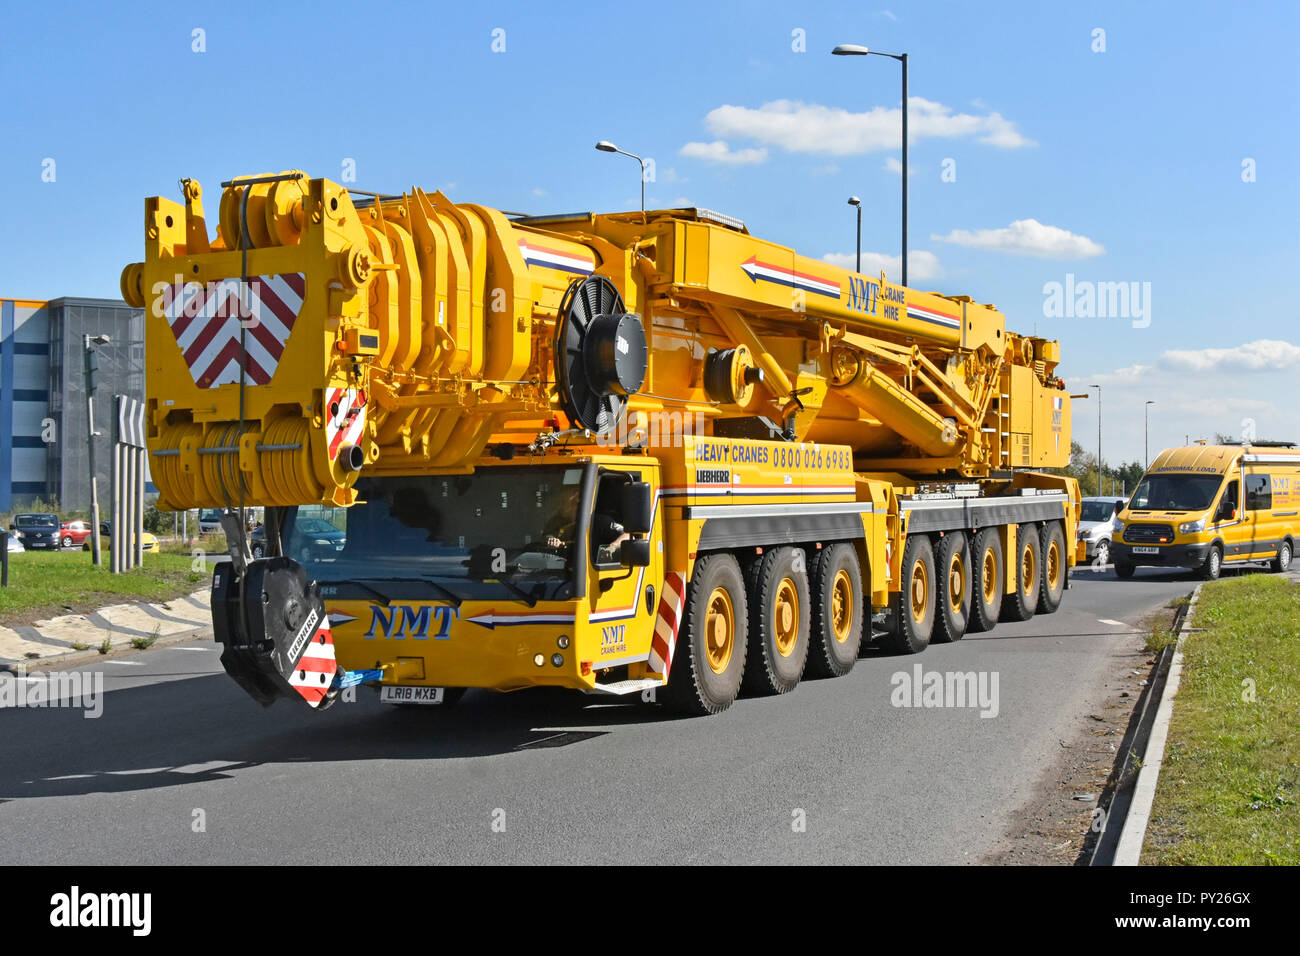 Hgv lorry truck driver in cab of left hand drive Liebherr telescopic hydraulic heavy lifting mobile crane driving on road Tilbury Essex England UK Stock Photo